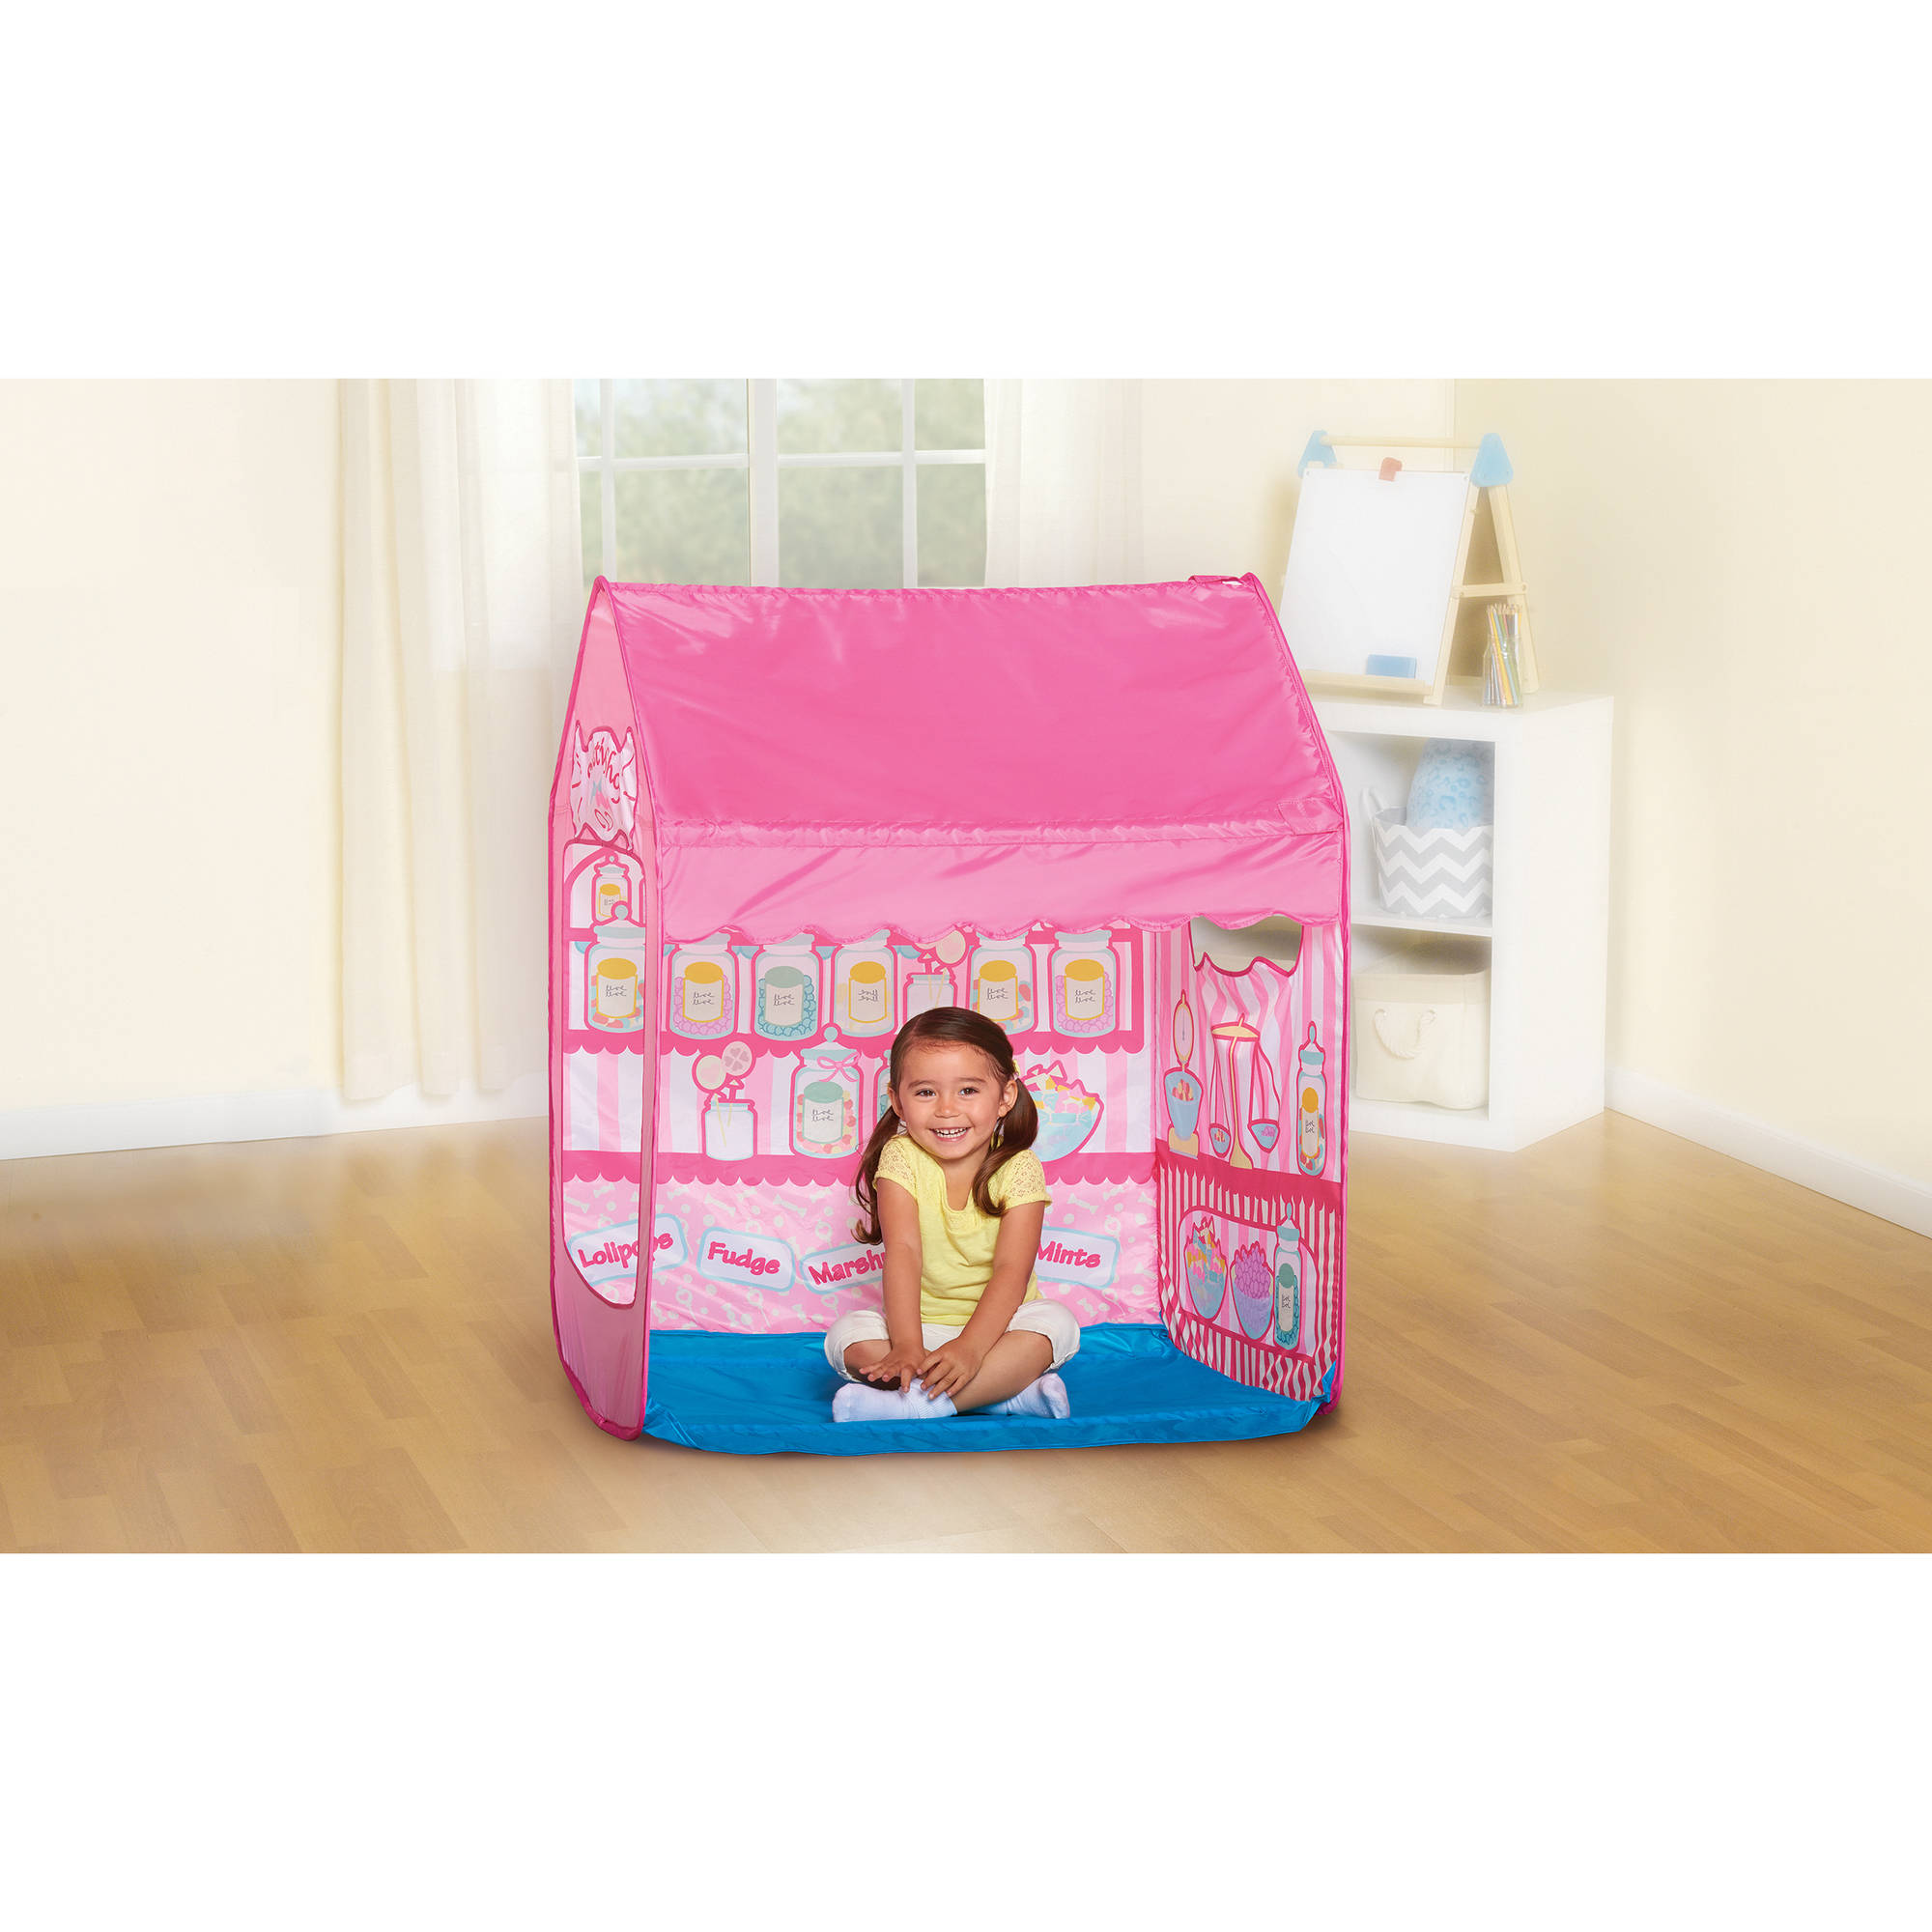 Candy Store Pop Up Play Tent  sc 1 st  Walmart & Candy Store Pop Up Play Tent - Walmart.com